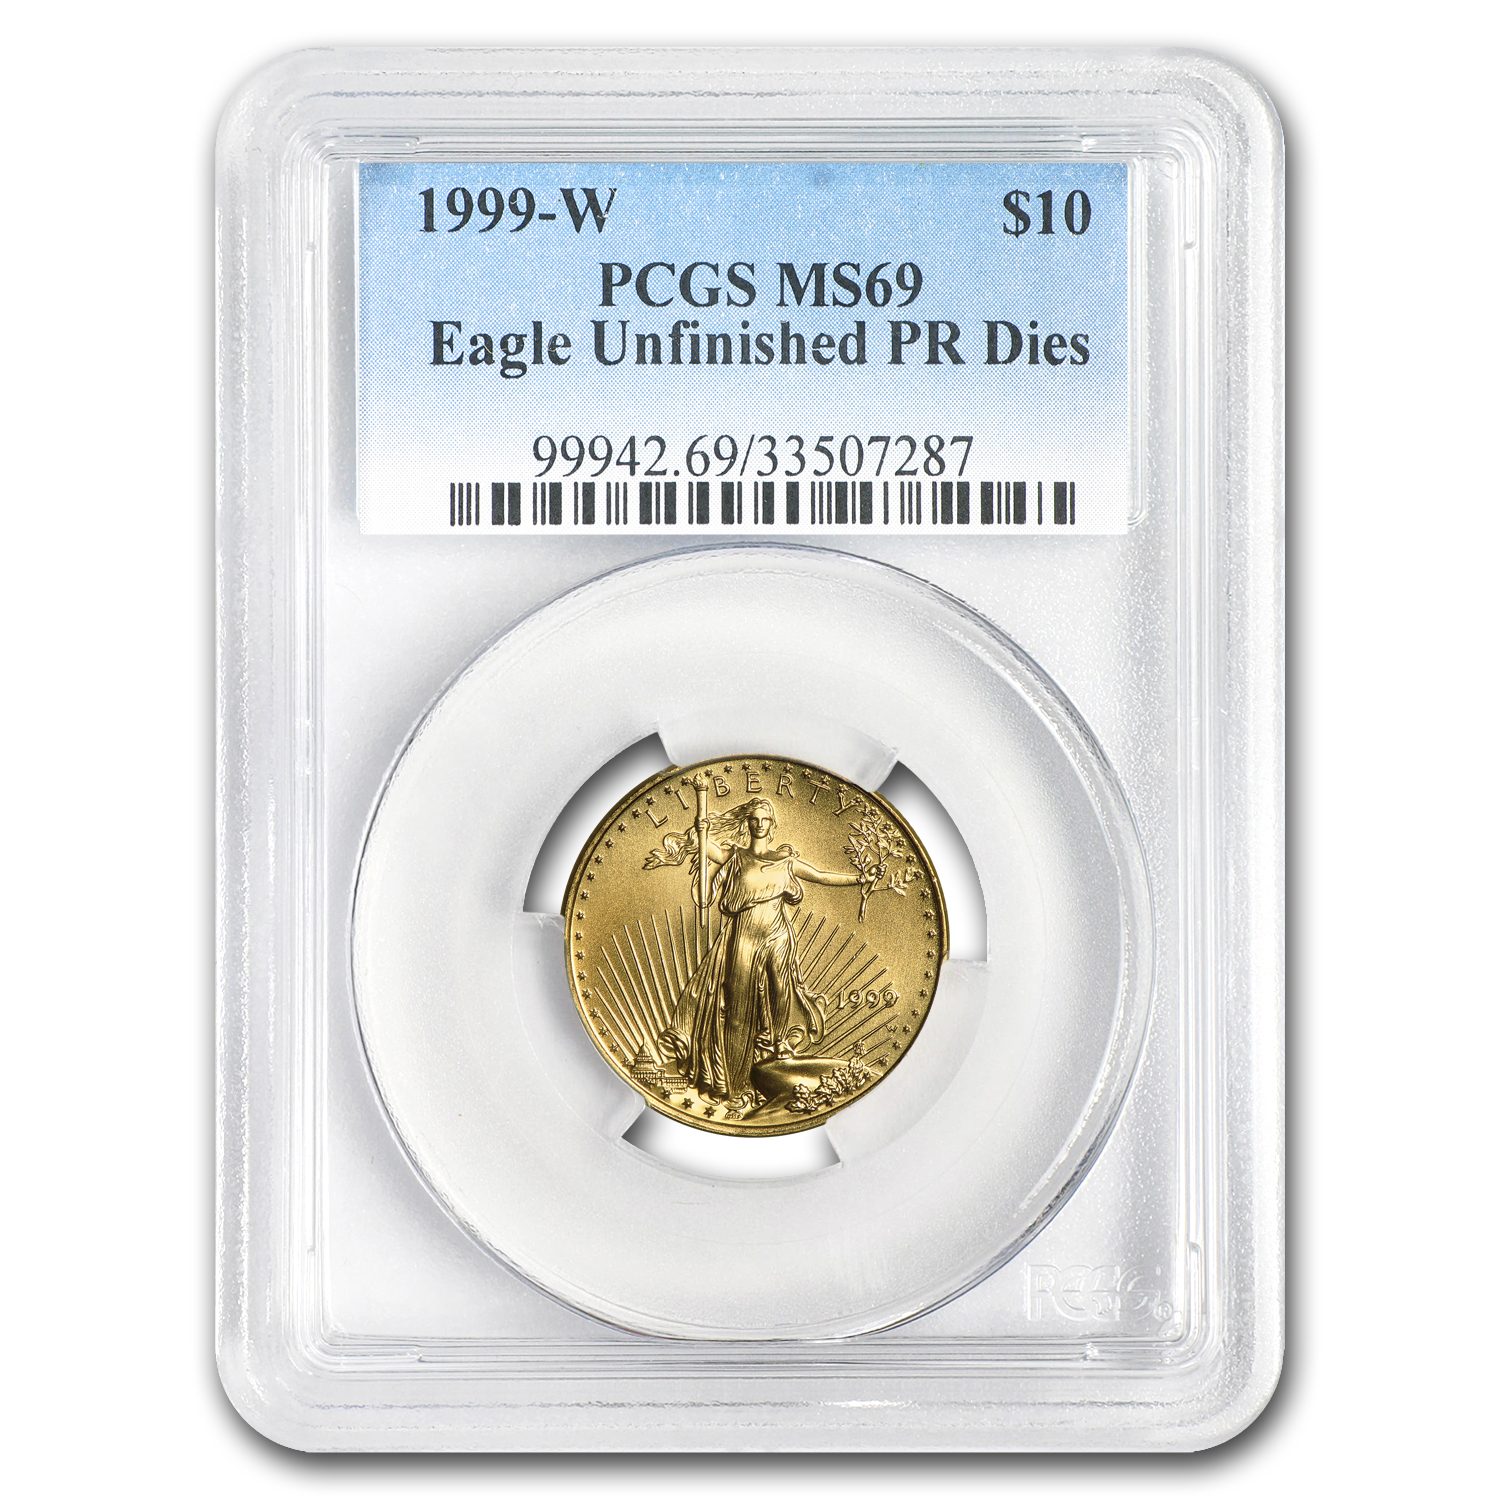 1999-W 1/4 oz Gold American Eagle MS-69 PCGS (W Variety)